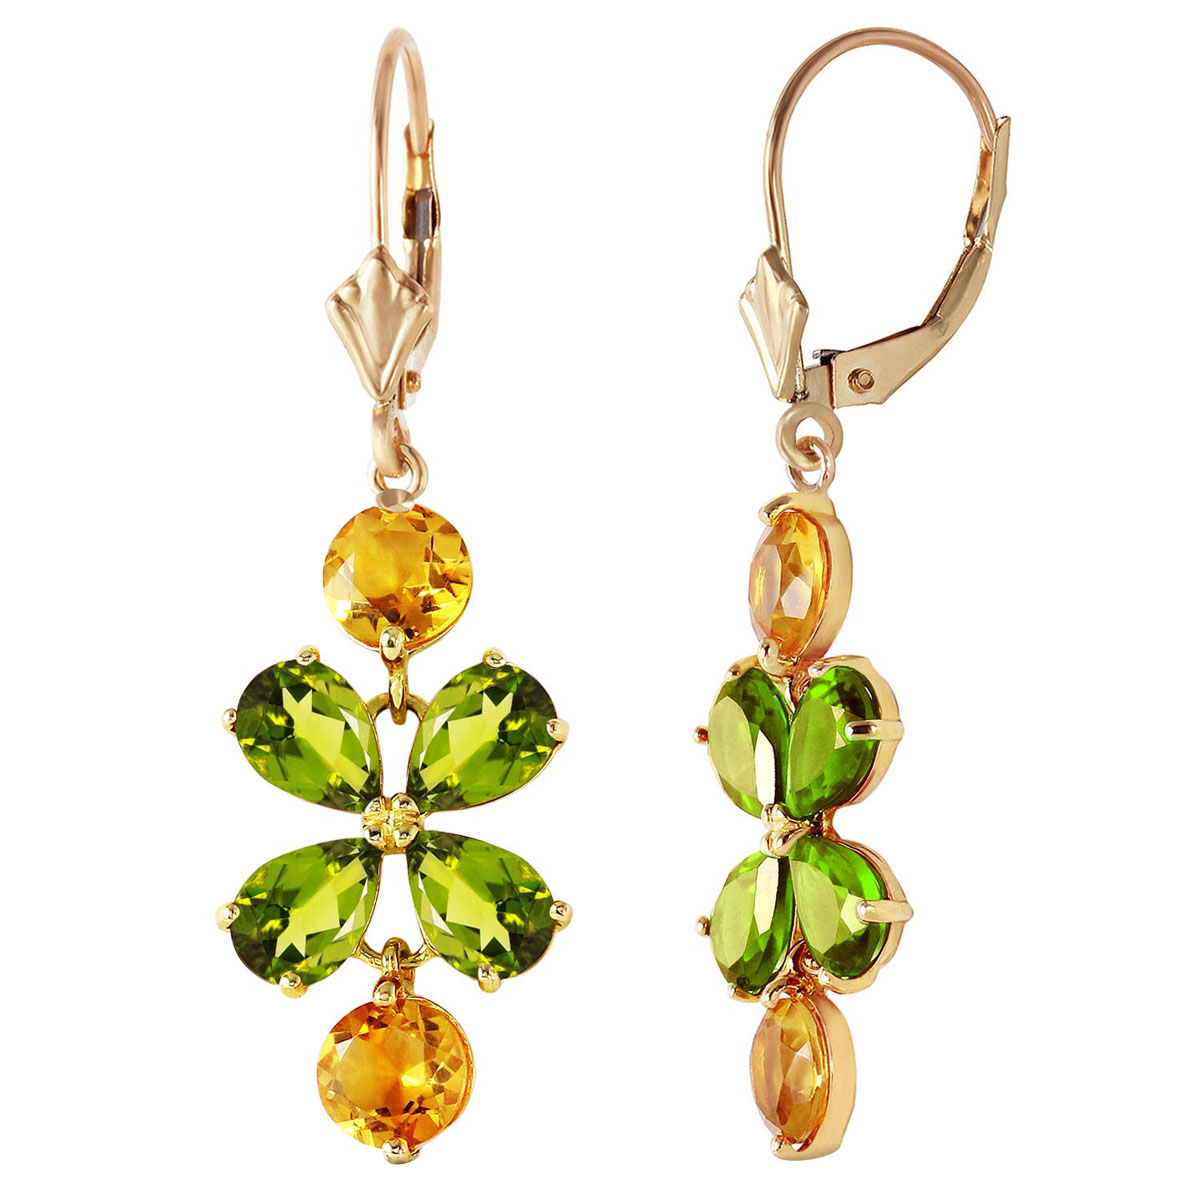 Peridot & Citrine Blossom Drop Earrings in 9ct Gold